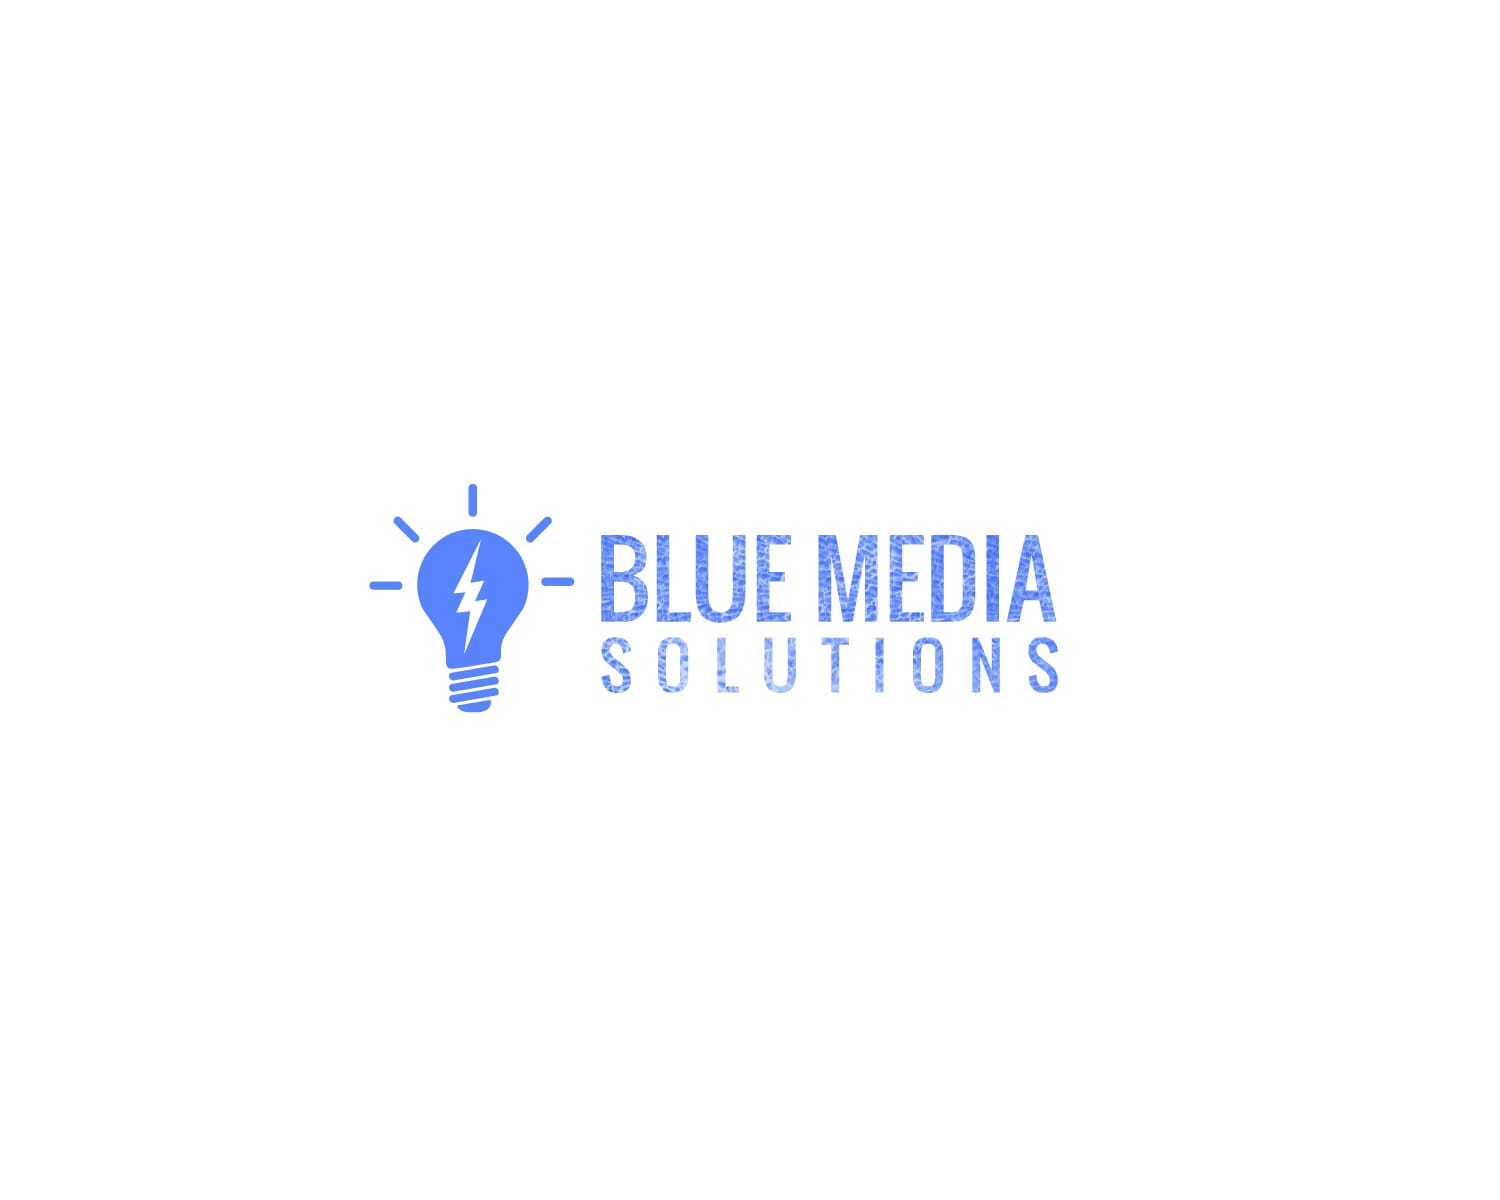 Blue Media Solutions image